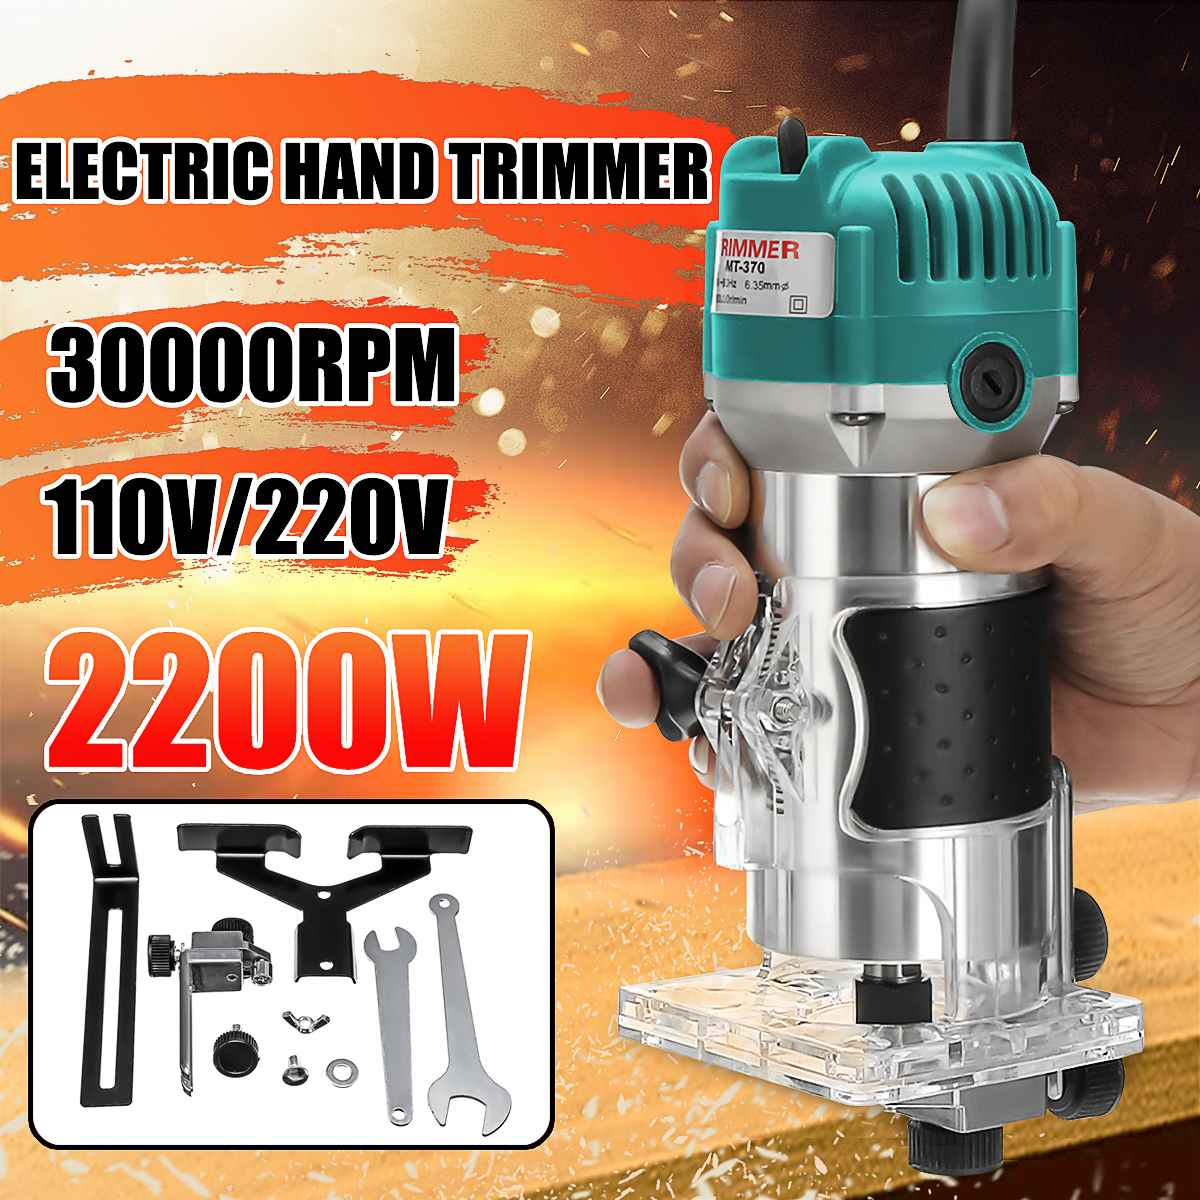 110V/220V 2200W 6.35mm Electric Hand Trimmer Wood Laminate Palms Router Joiners Router Copper Motor Carving Machine DIY Tools